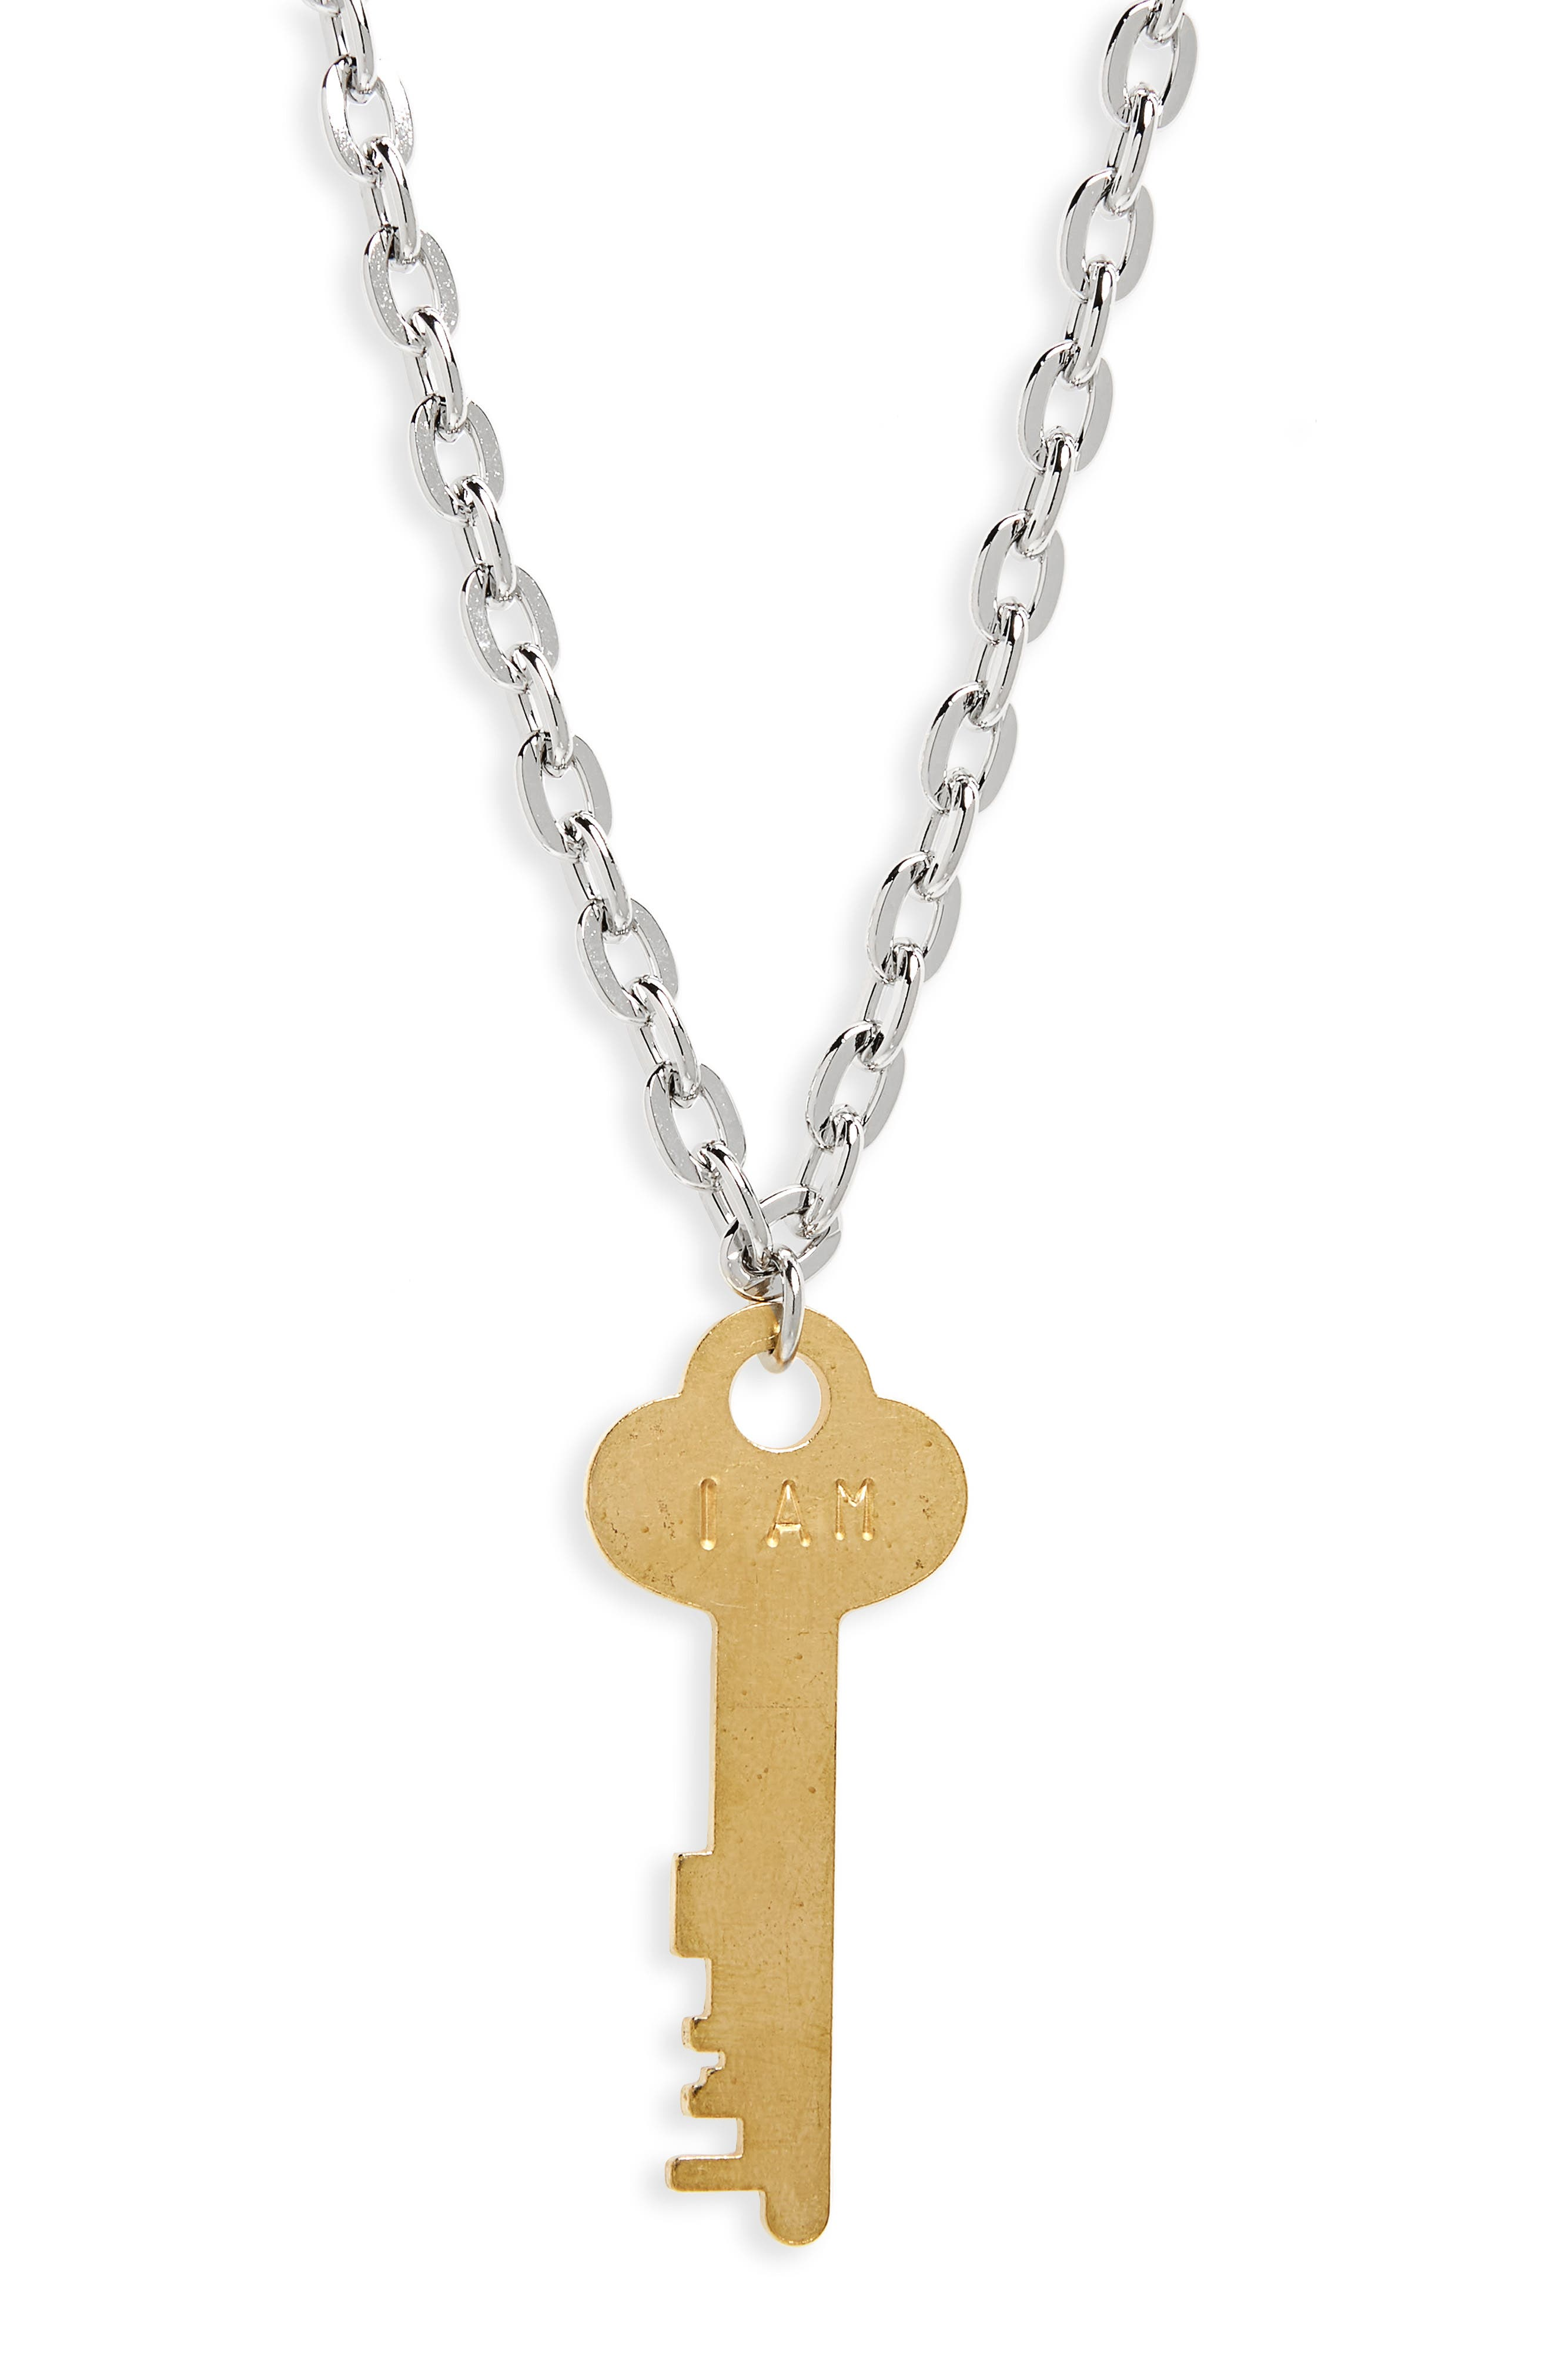 I Am Love Key Charm Necklace,                             Alternate thumbnail 3, color,